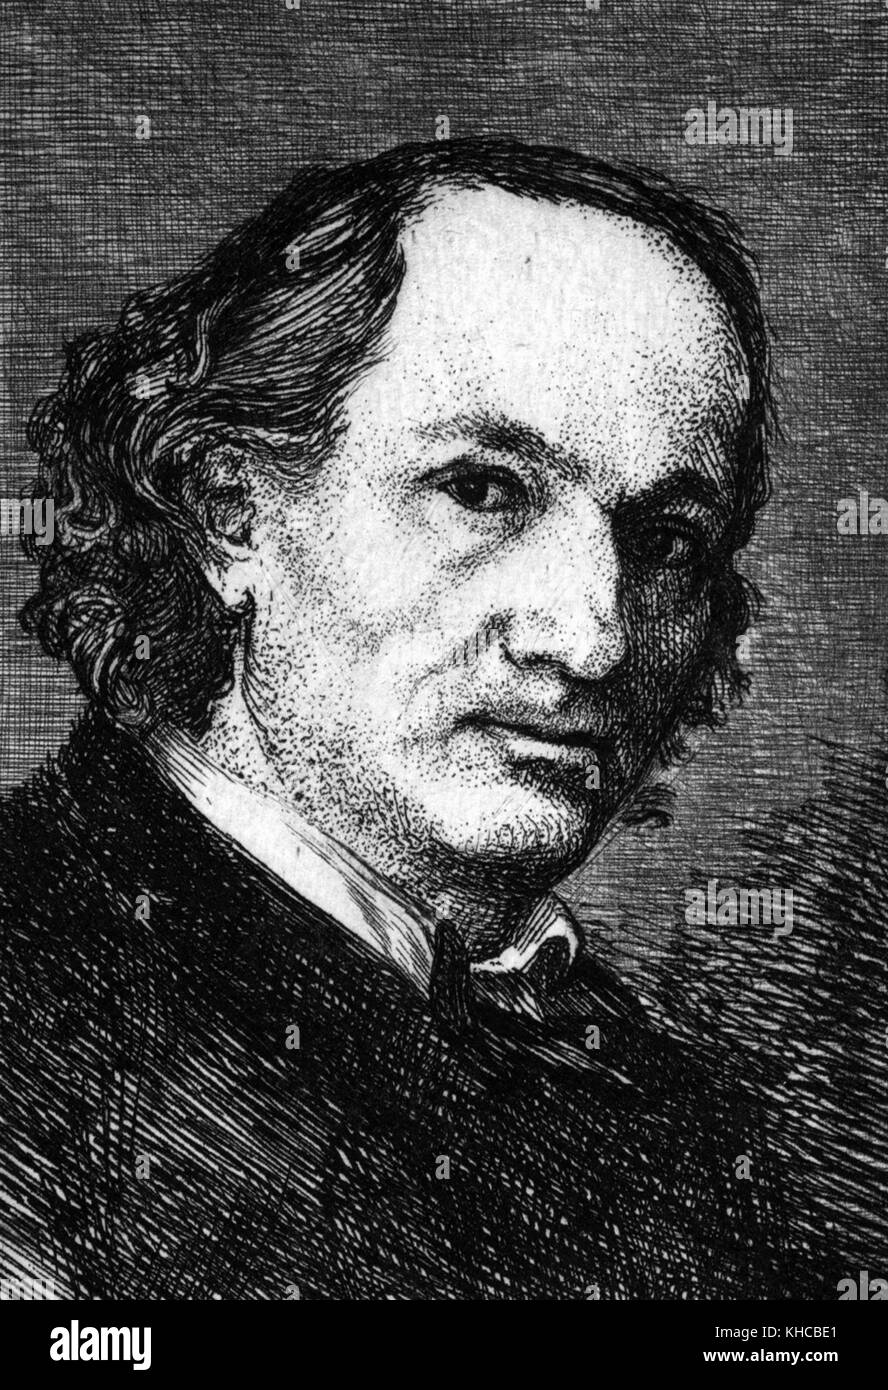 Etched portrait of a mature Charles Baudelaire, French poet who also produced notable work as an essayist, art critic, - Stock Image